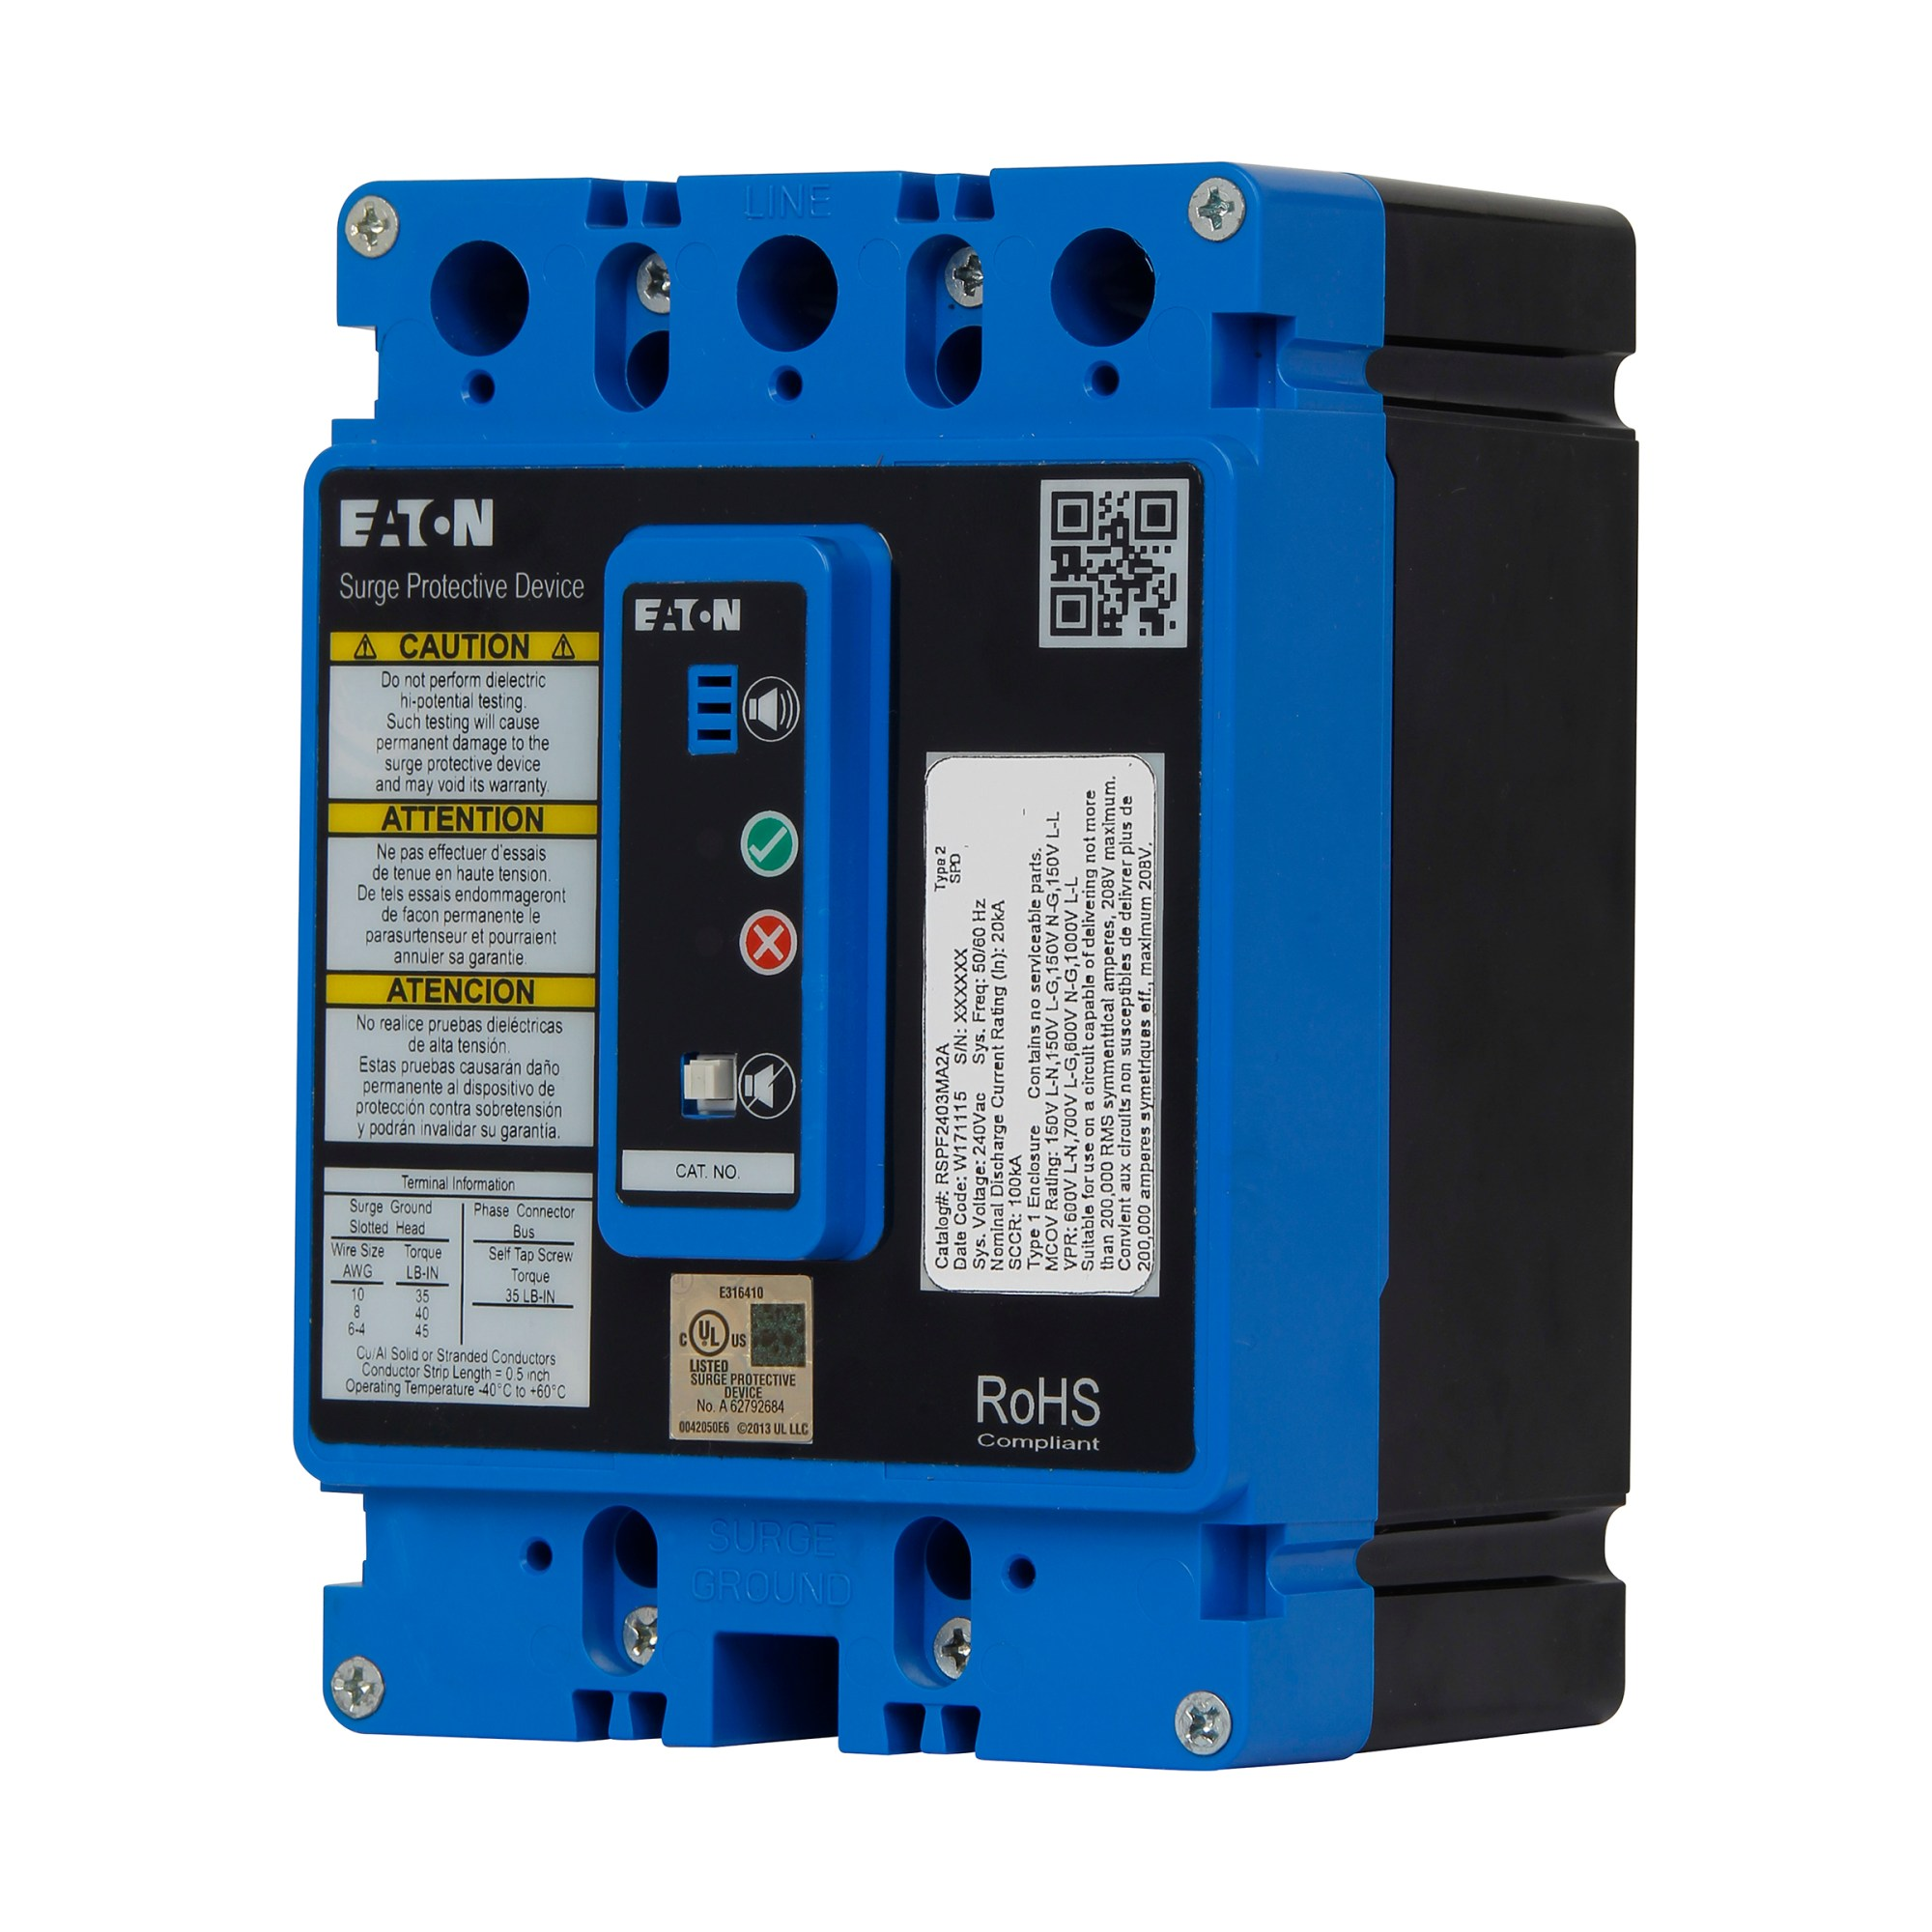 hight resolution of built for installation directly into a panelboard or switchboard without any modifications the rspf has configurations compatible with all common voltages